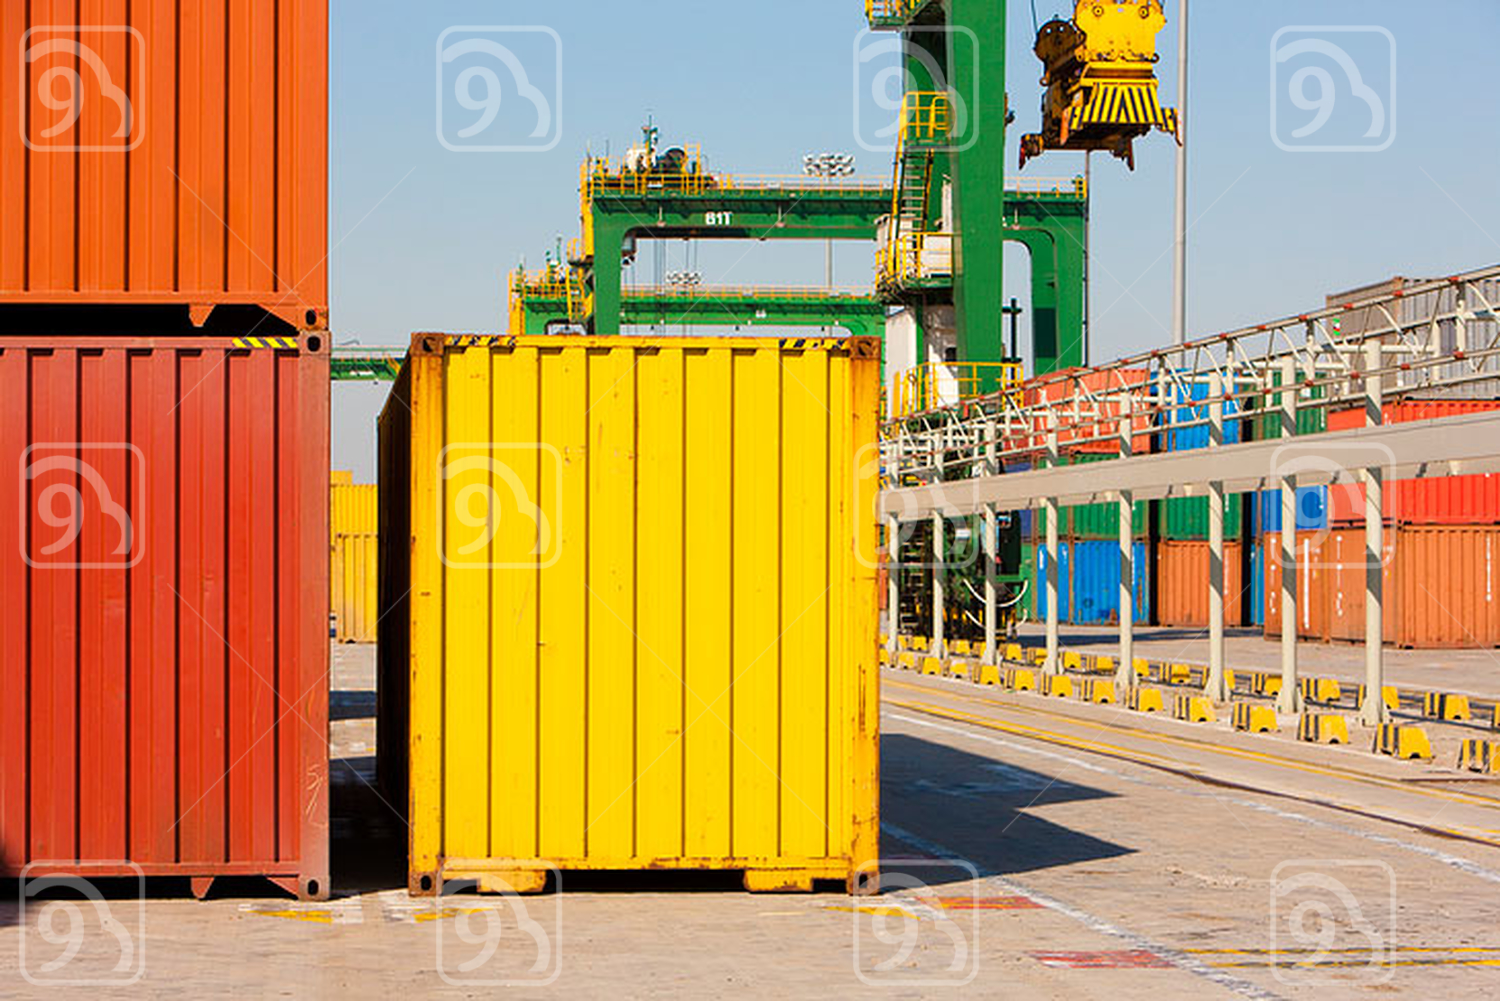 Cargo containers and cranes in shipping dock